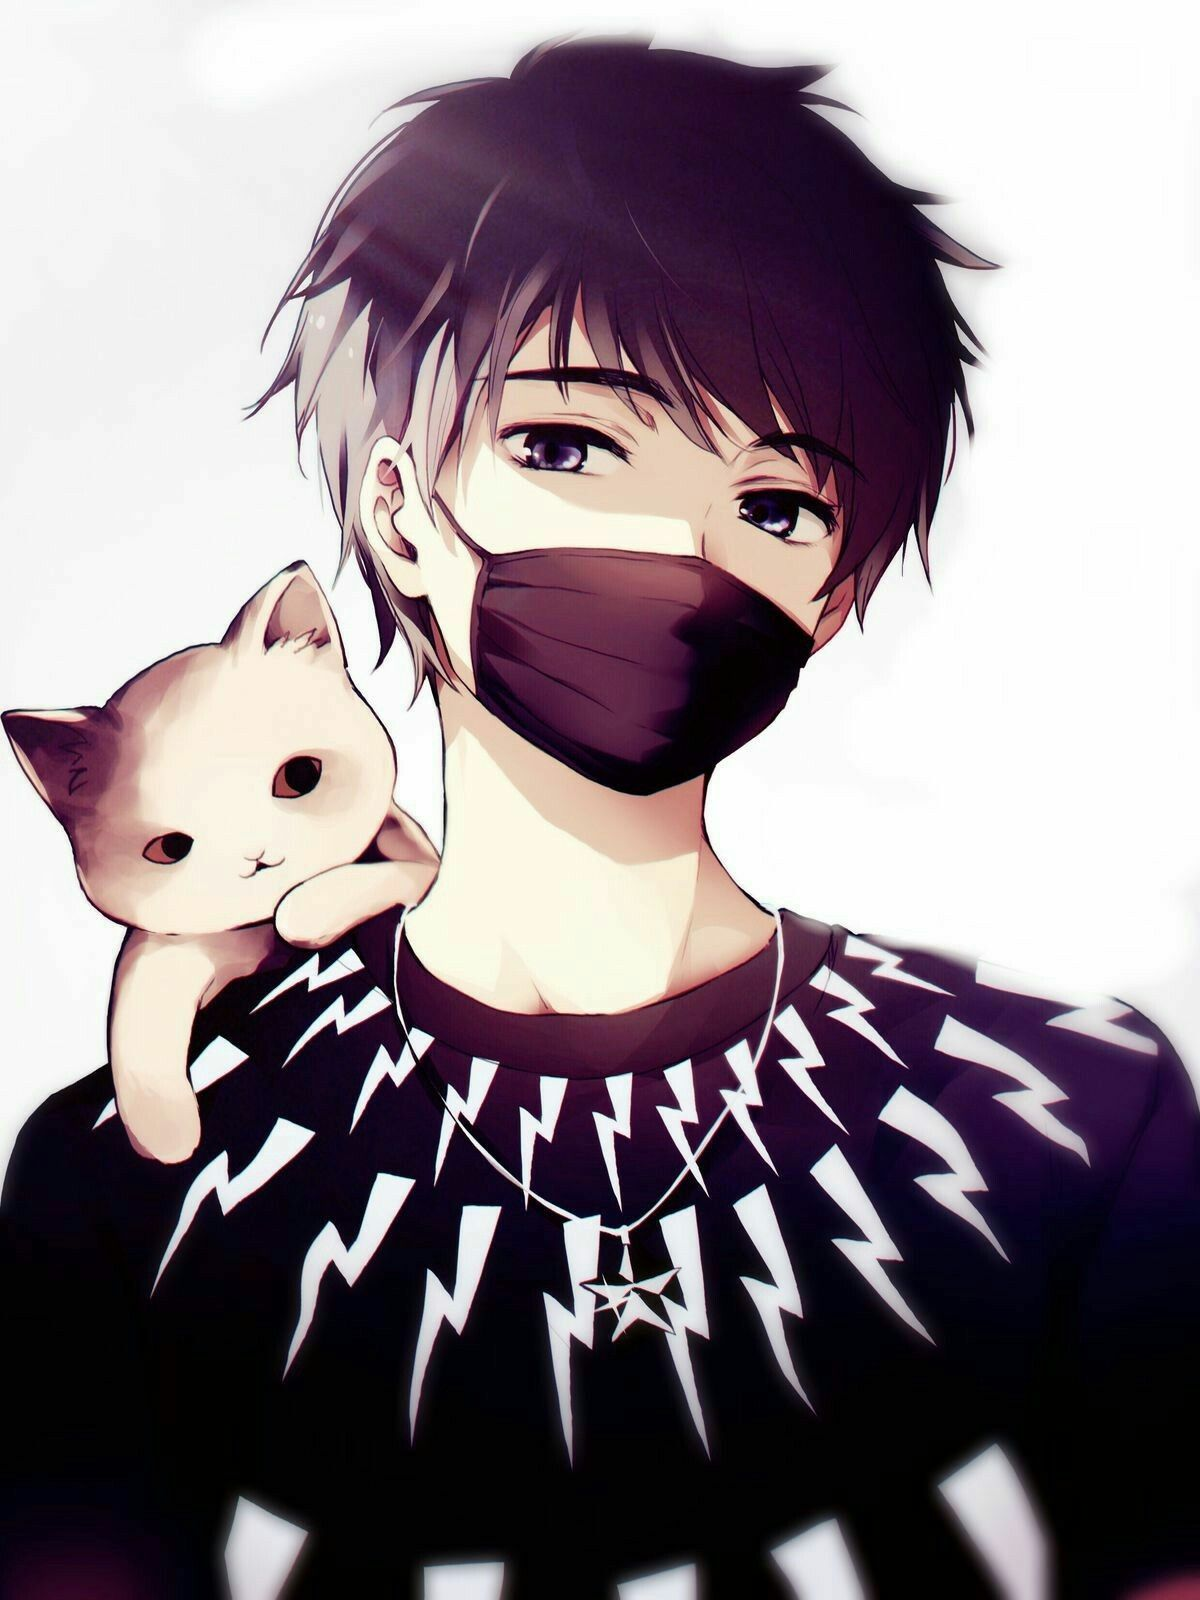 Cute Boy Anime Pictures : anime, pictures, Dayum, Wings, Handsome, Anime,, Anime, Drawings